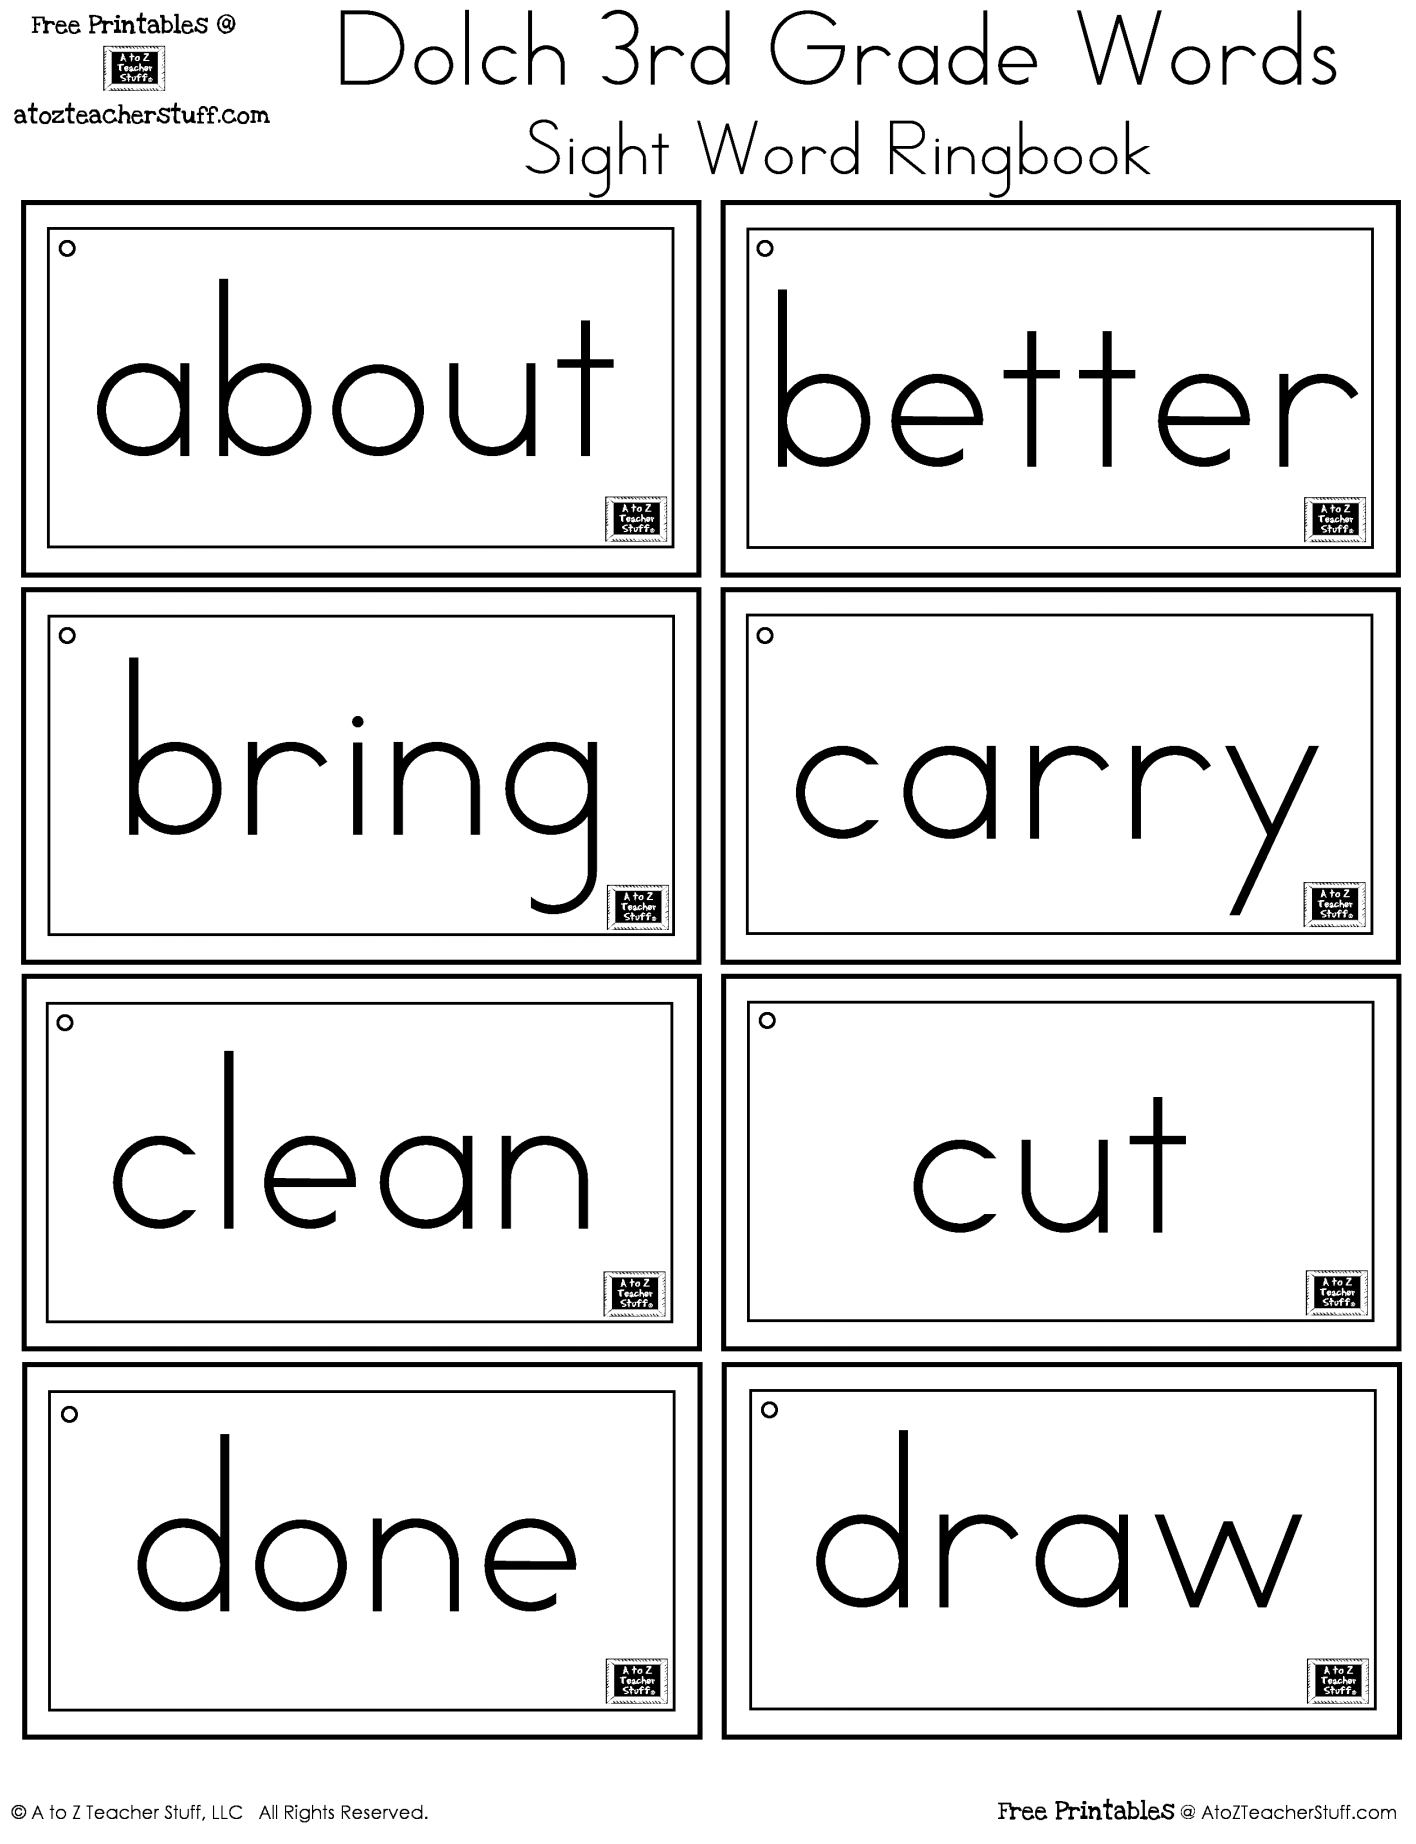 3rd Grade Dolch Words Sight Word Ringbook   First grade sight words [ 1844 x 1416 Pixel ]